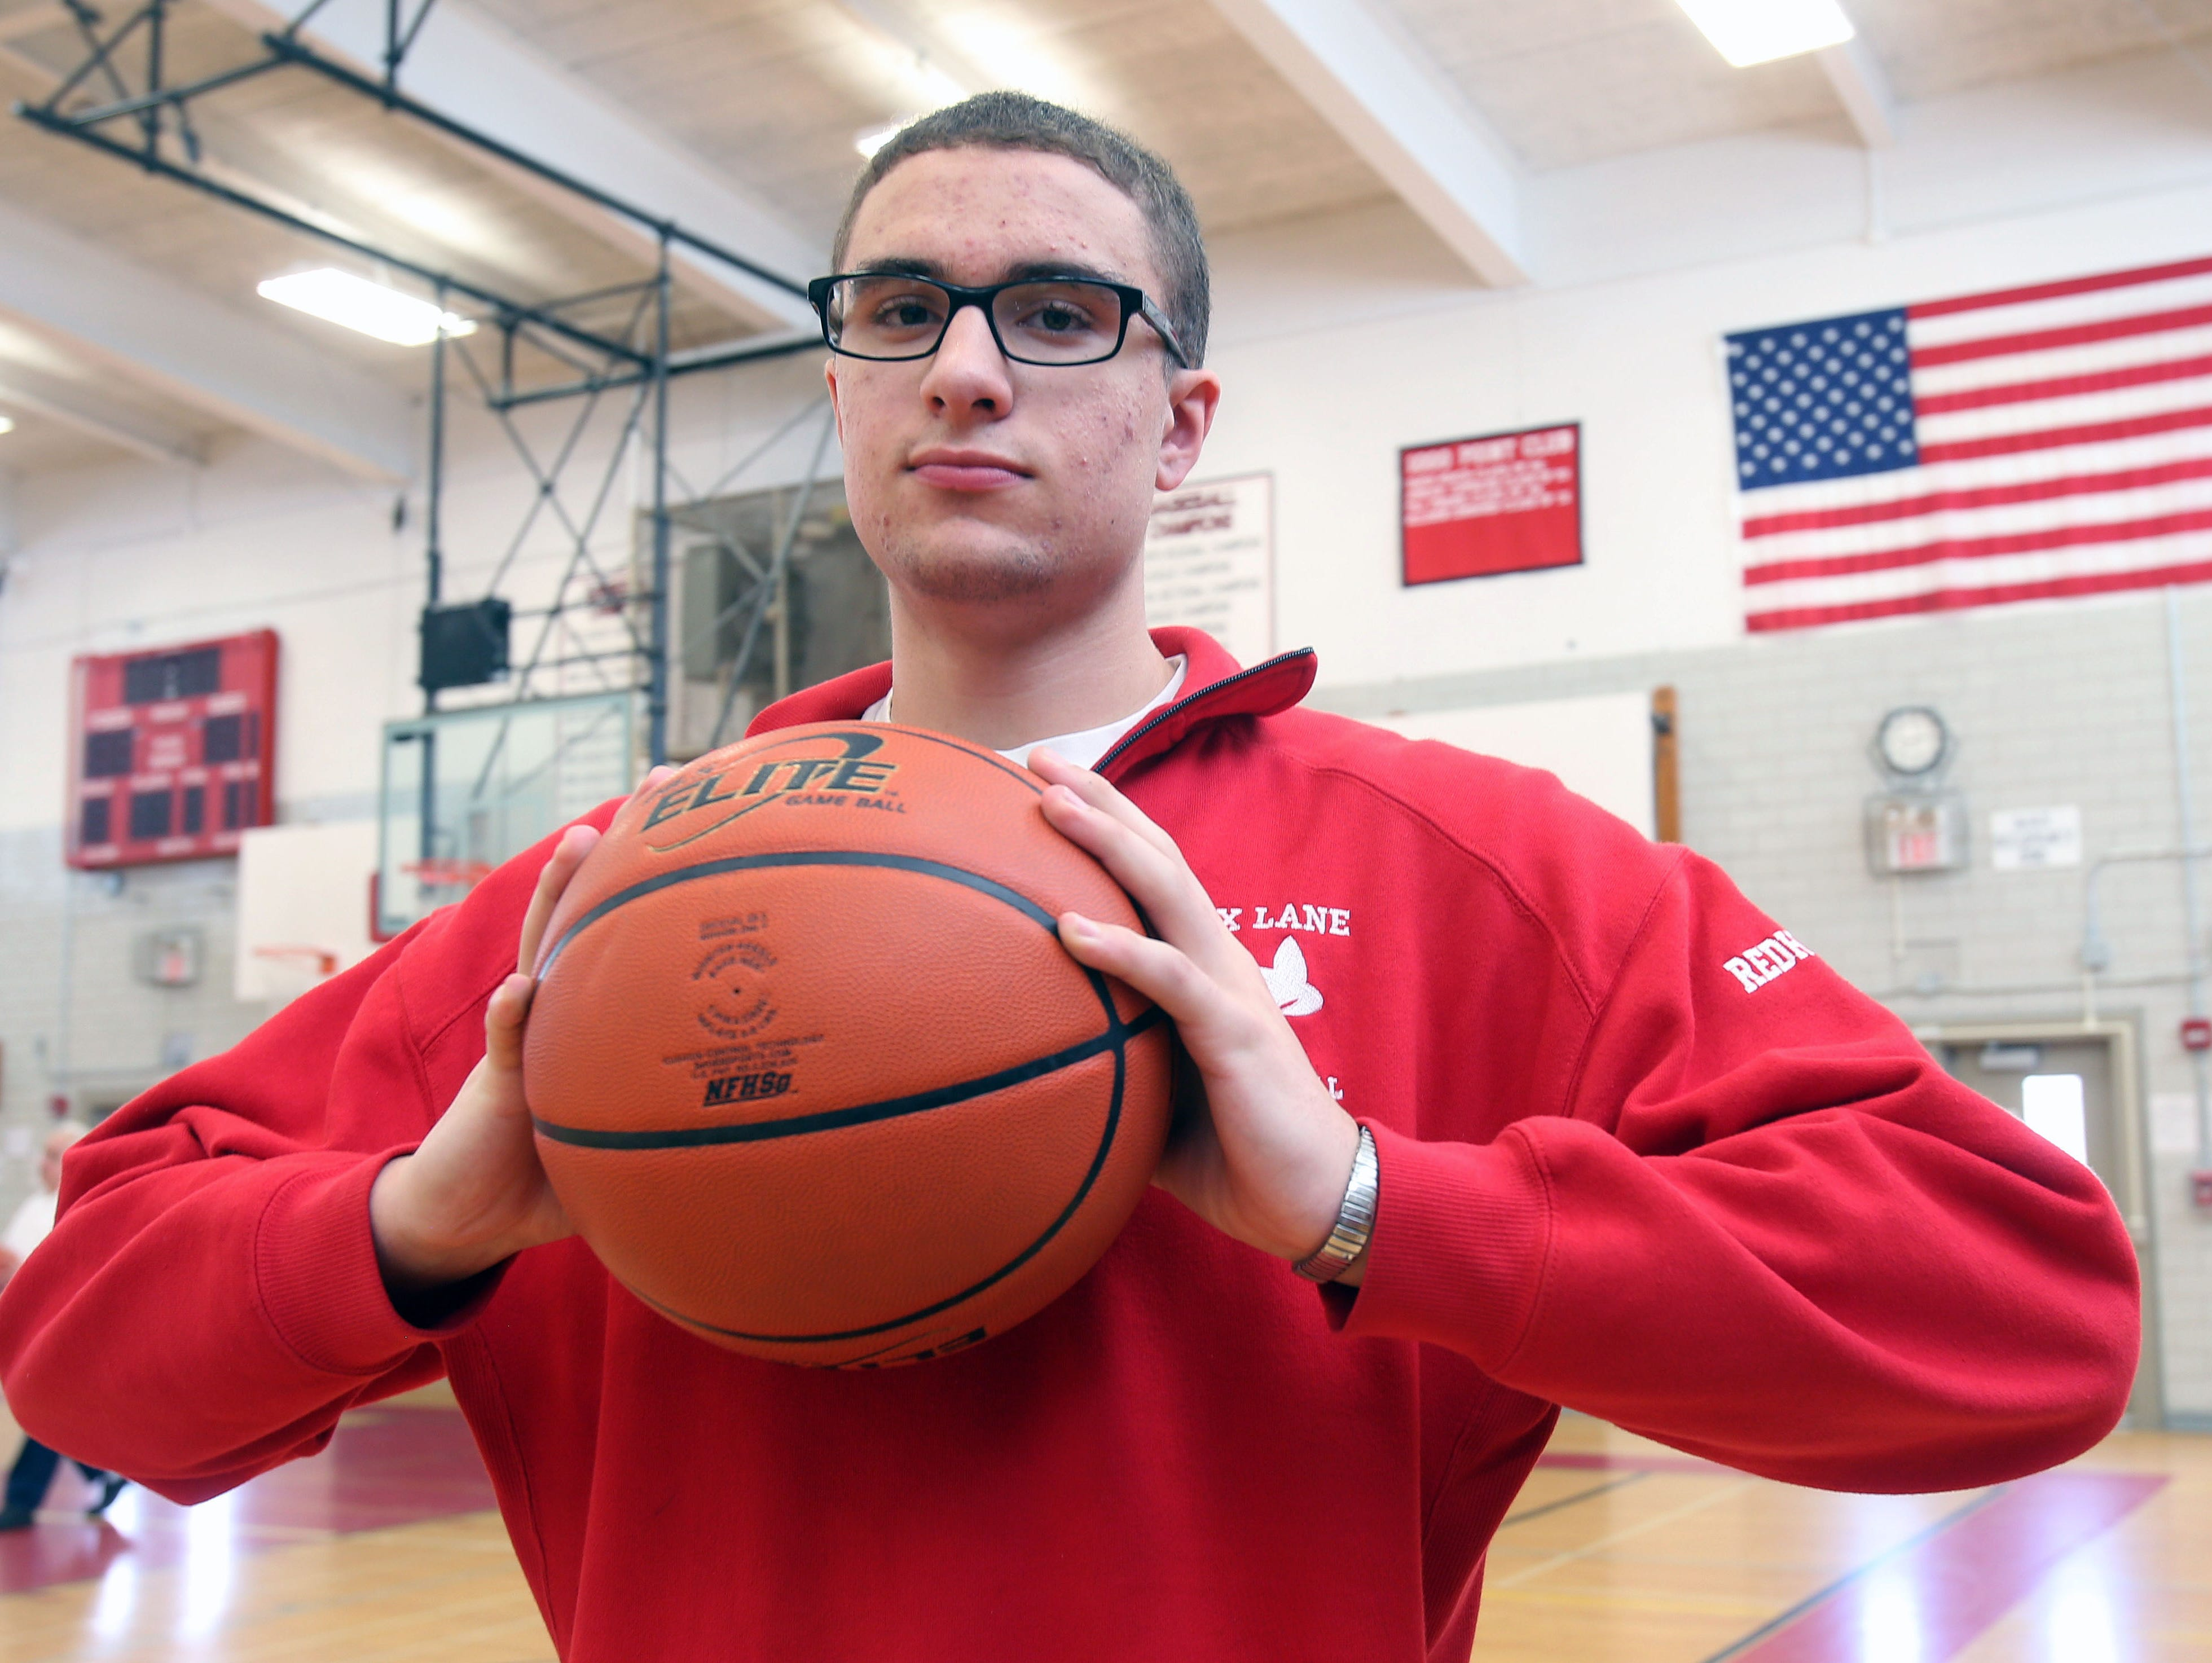 Fox Lane senior Matt Redhead is the Westchester/Putnam boys basketball player of the year, he is photographed in the gym at Fox Lane High School in Bedford April 6, 2016.